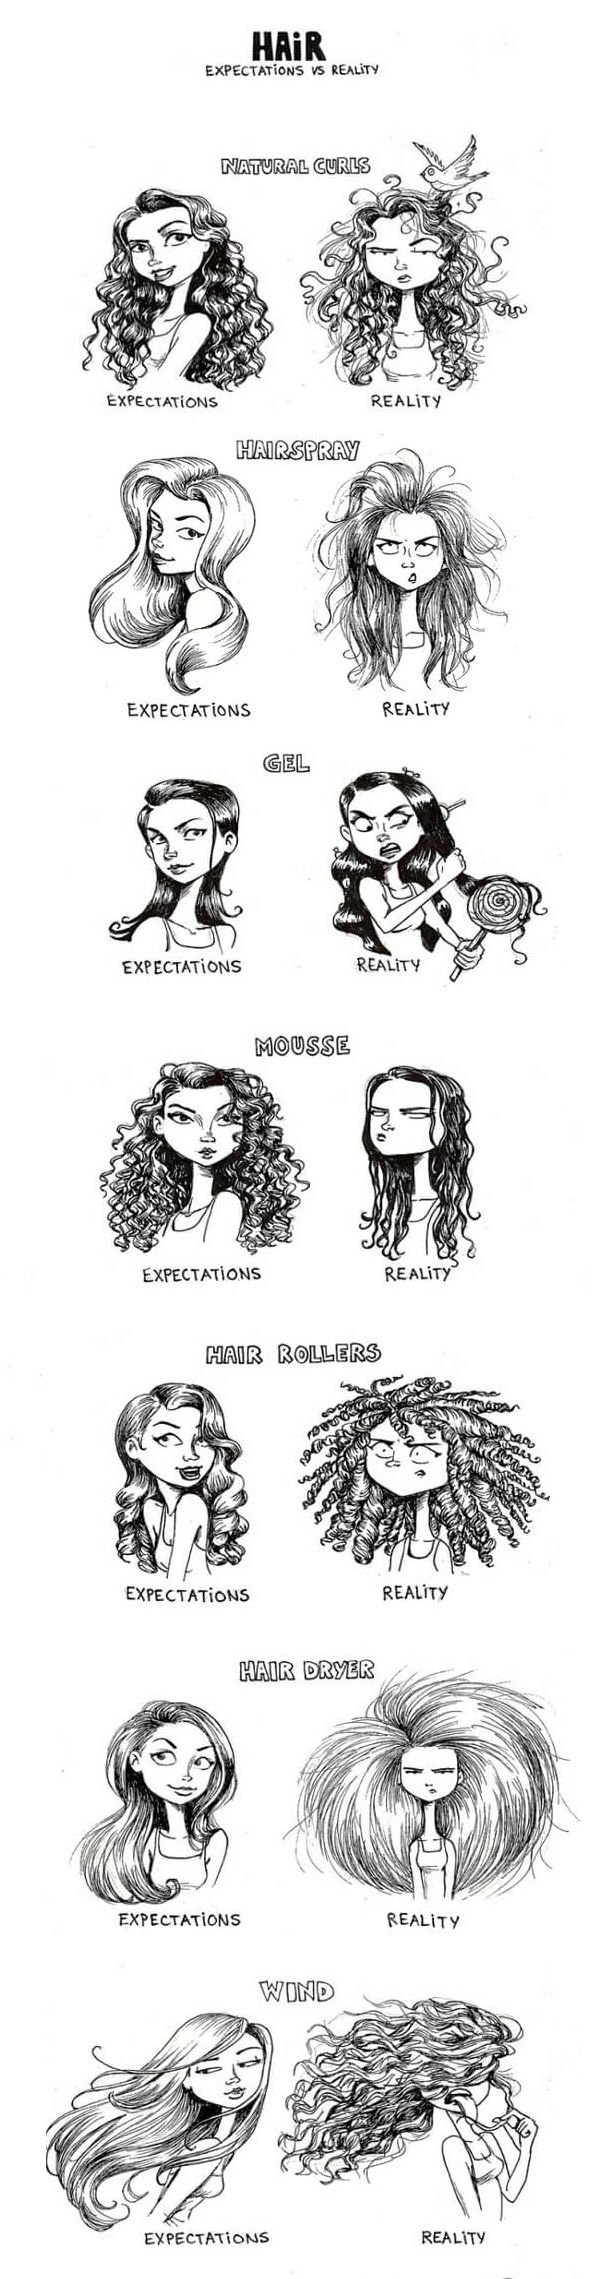 Womens Hair: Expectations Vs Reality - by C-Cassandra (http://c-cassandra.tumblr.com/about)